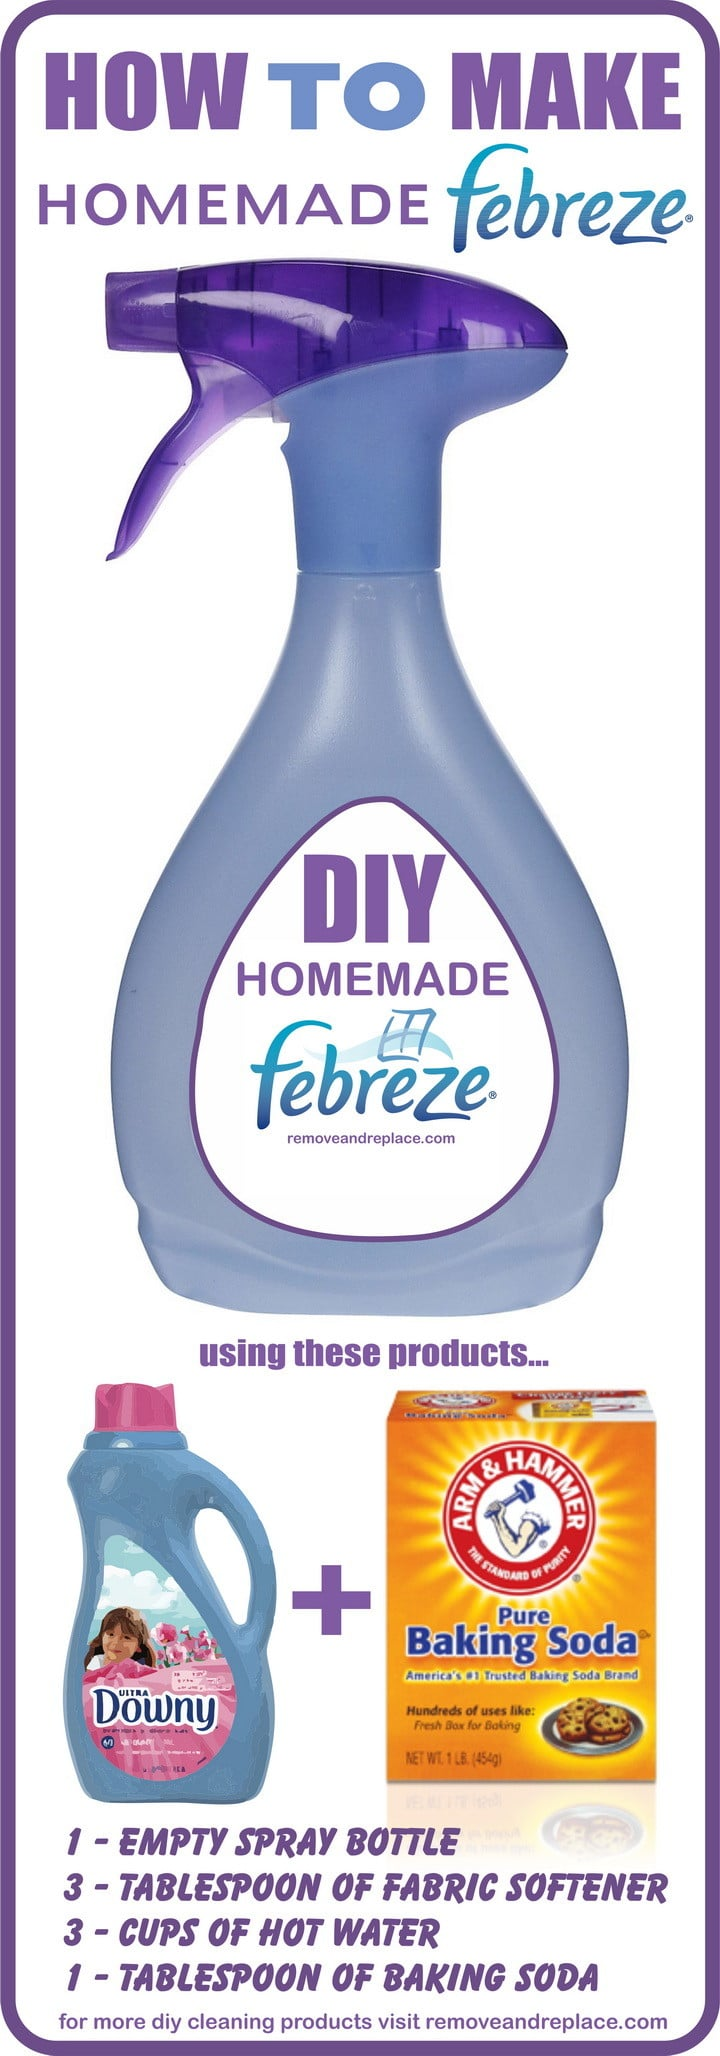 Diy Air Freshener With Fabric Softener Diy Do It Your Self